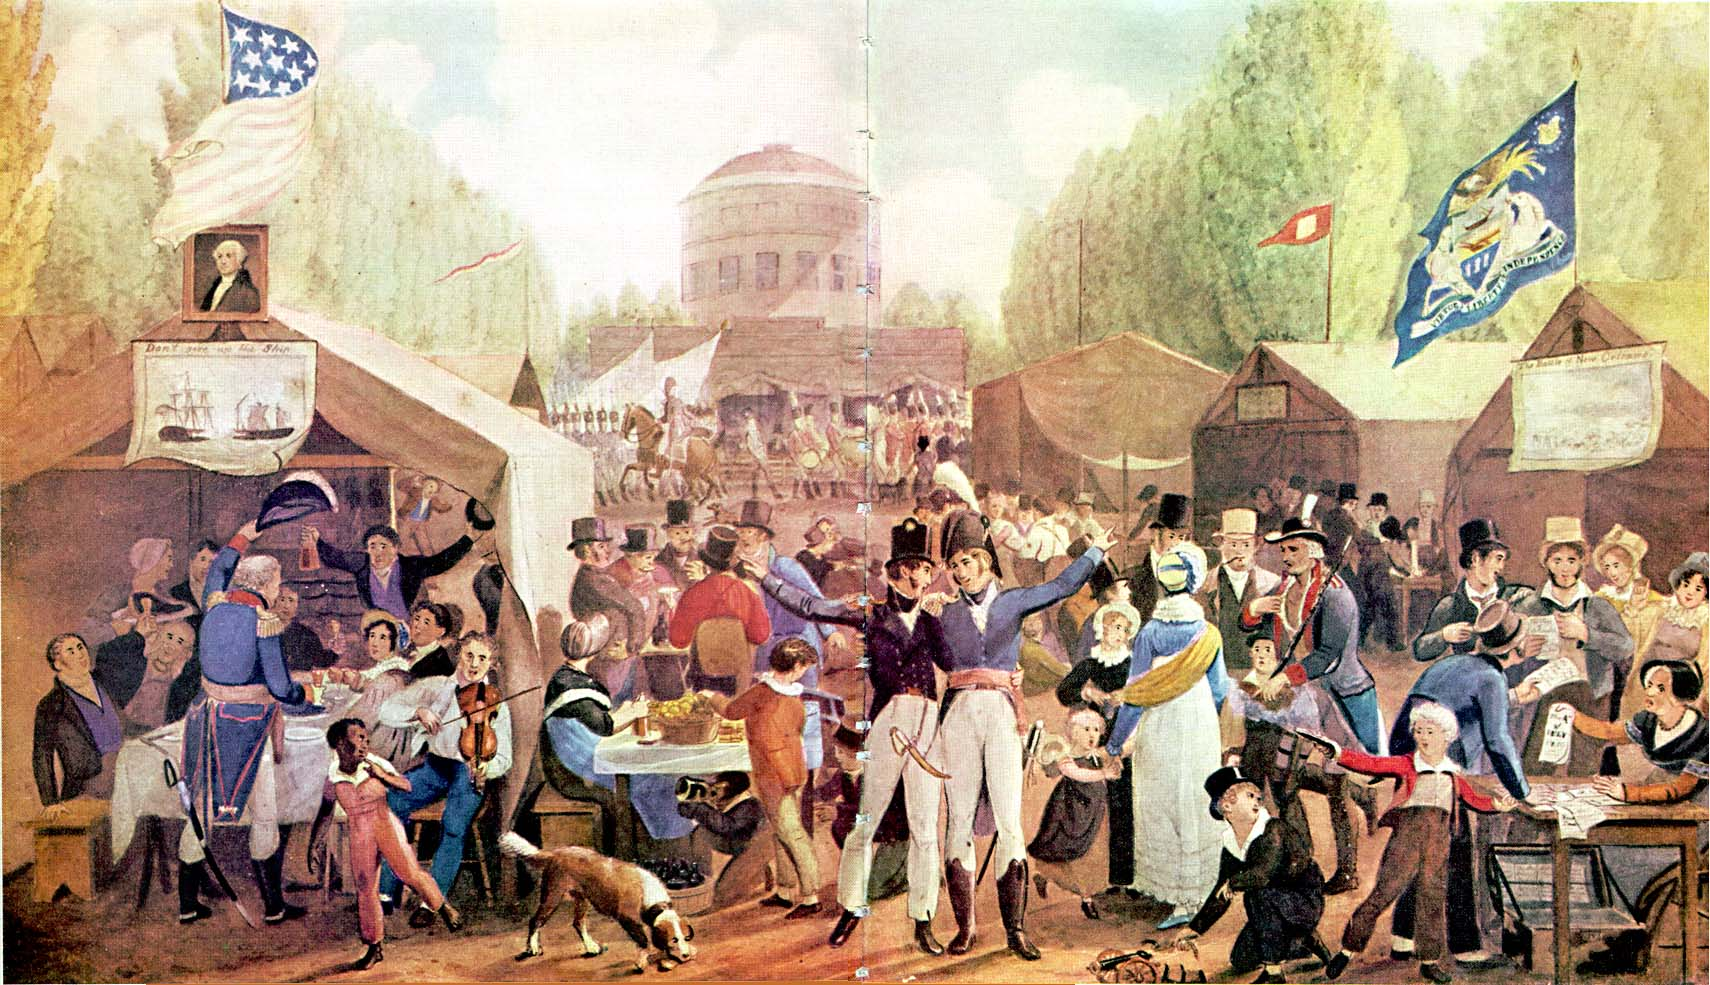 File:4th-of-July-1819-Philadelphia-John-Lewis-